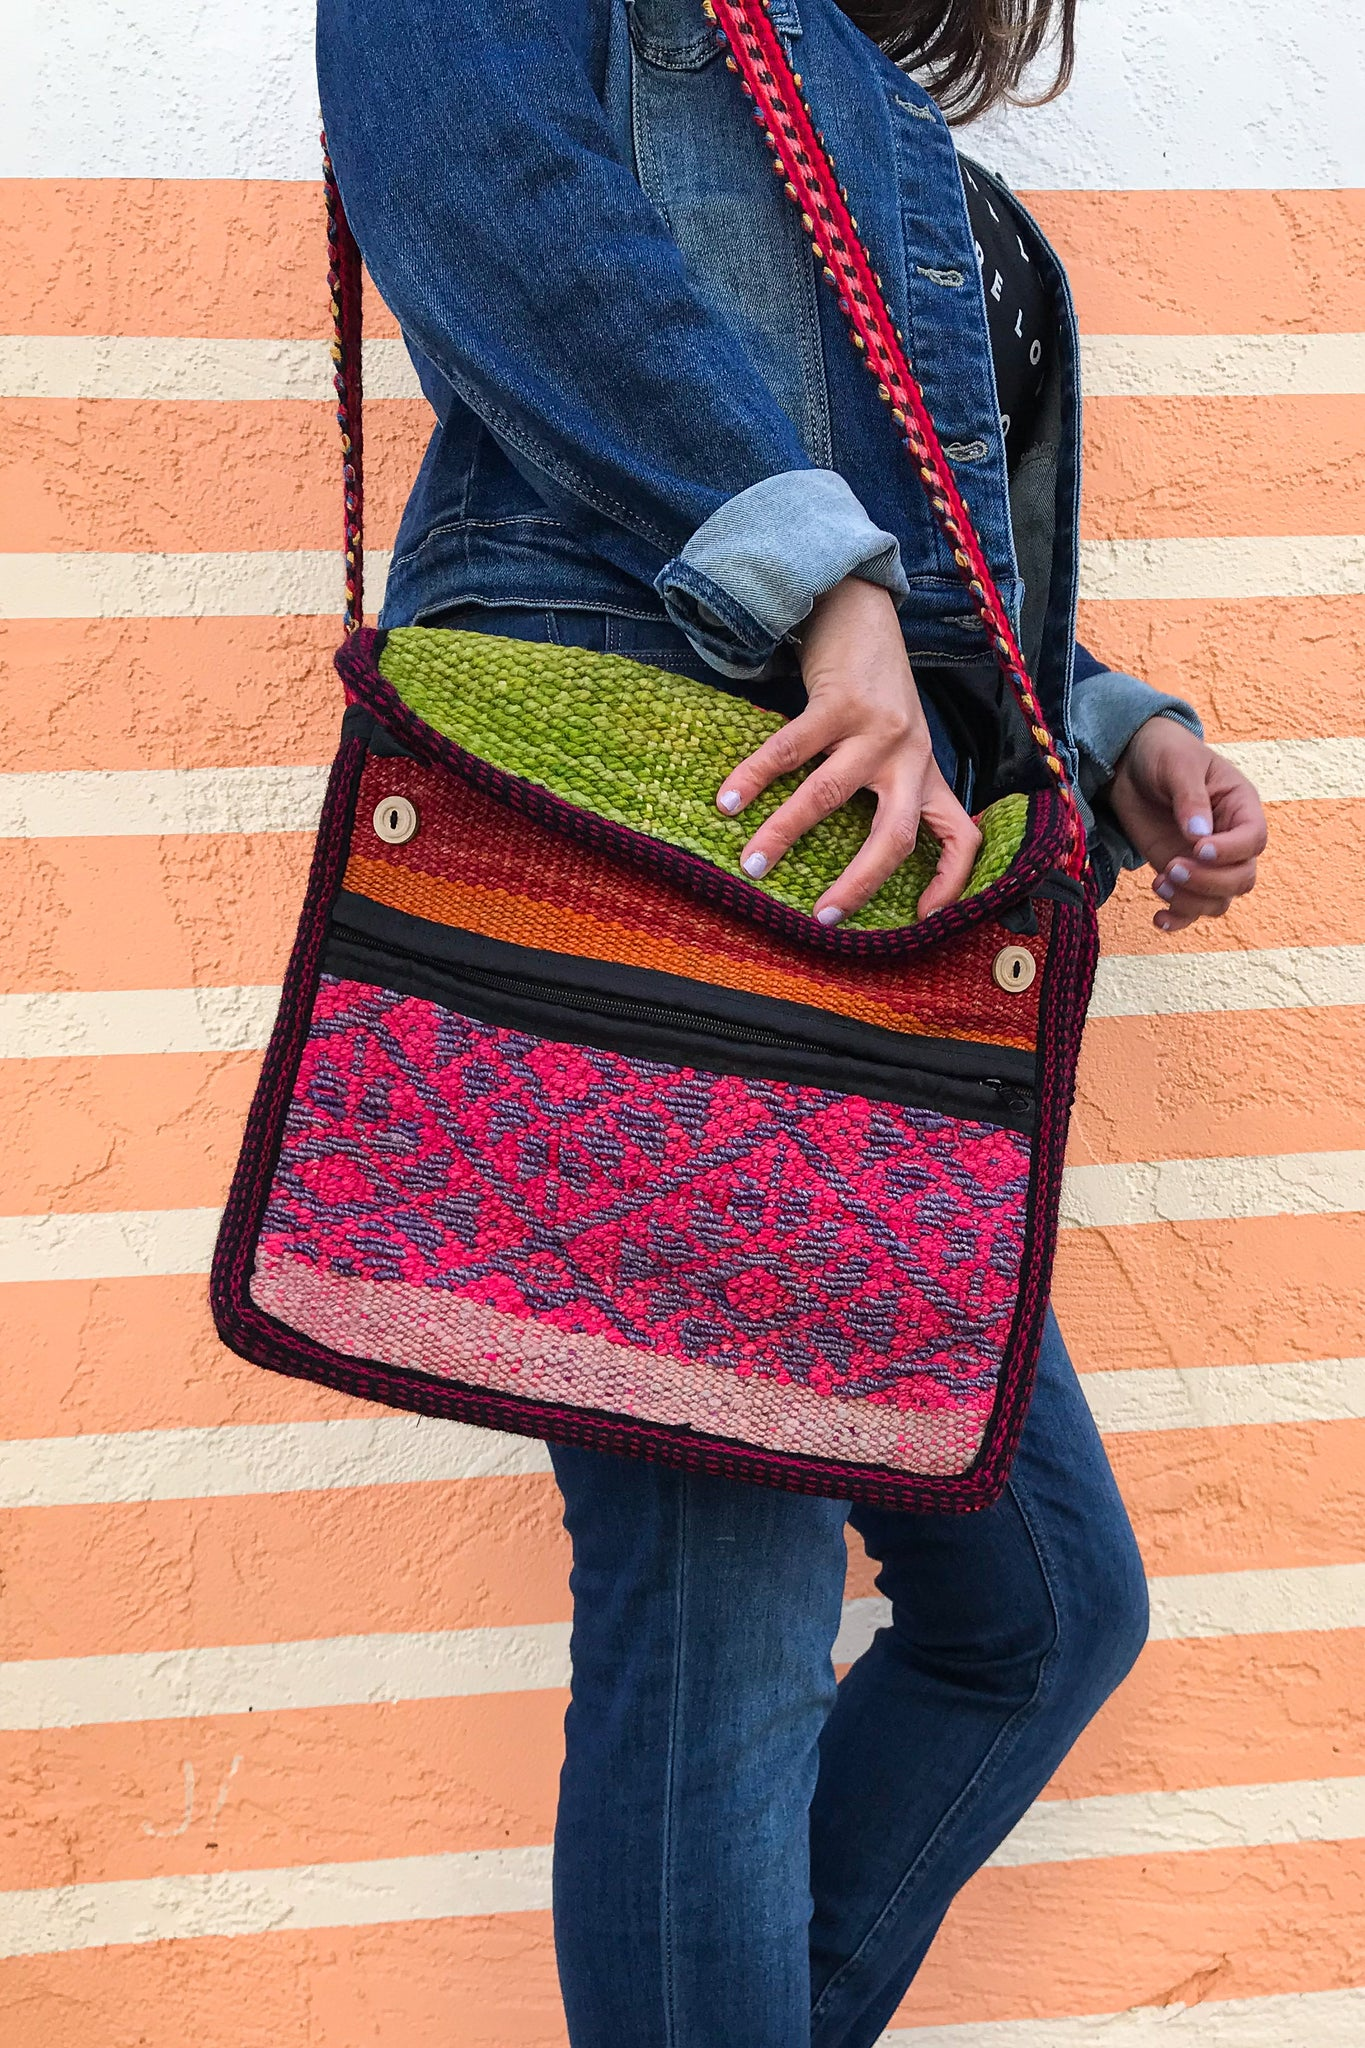 Raspberry Limeade Wool Cross-Body Bag - Wild Hearts & Halos